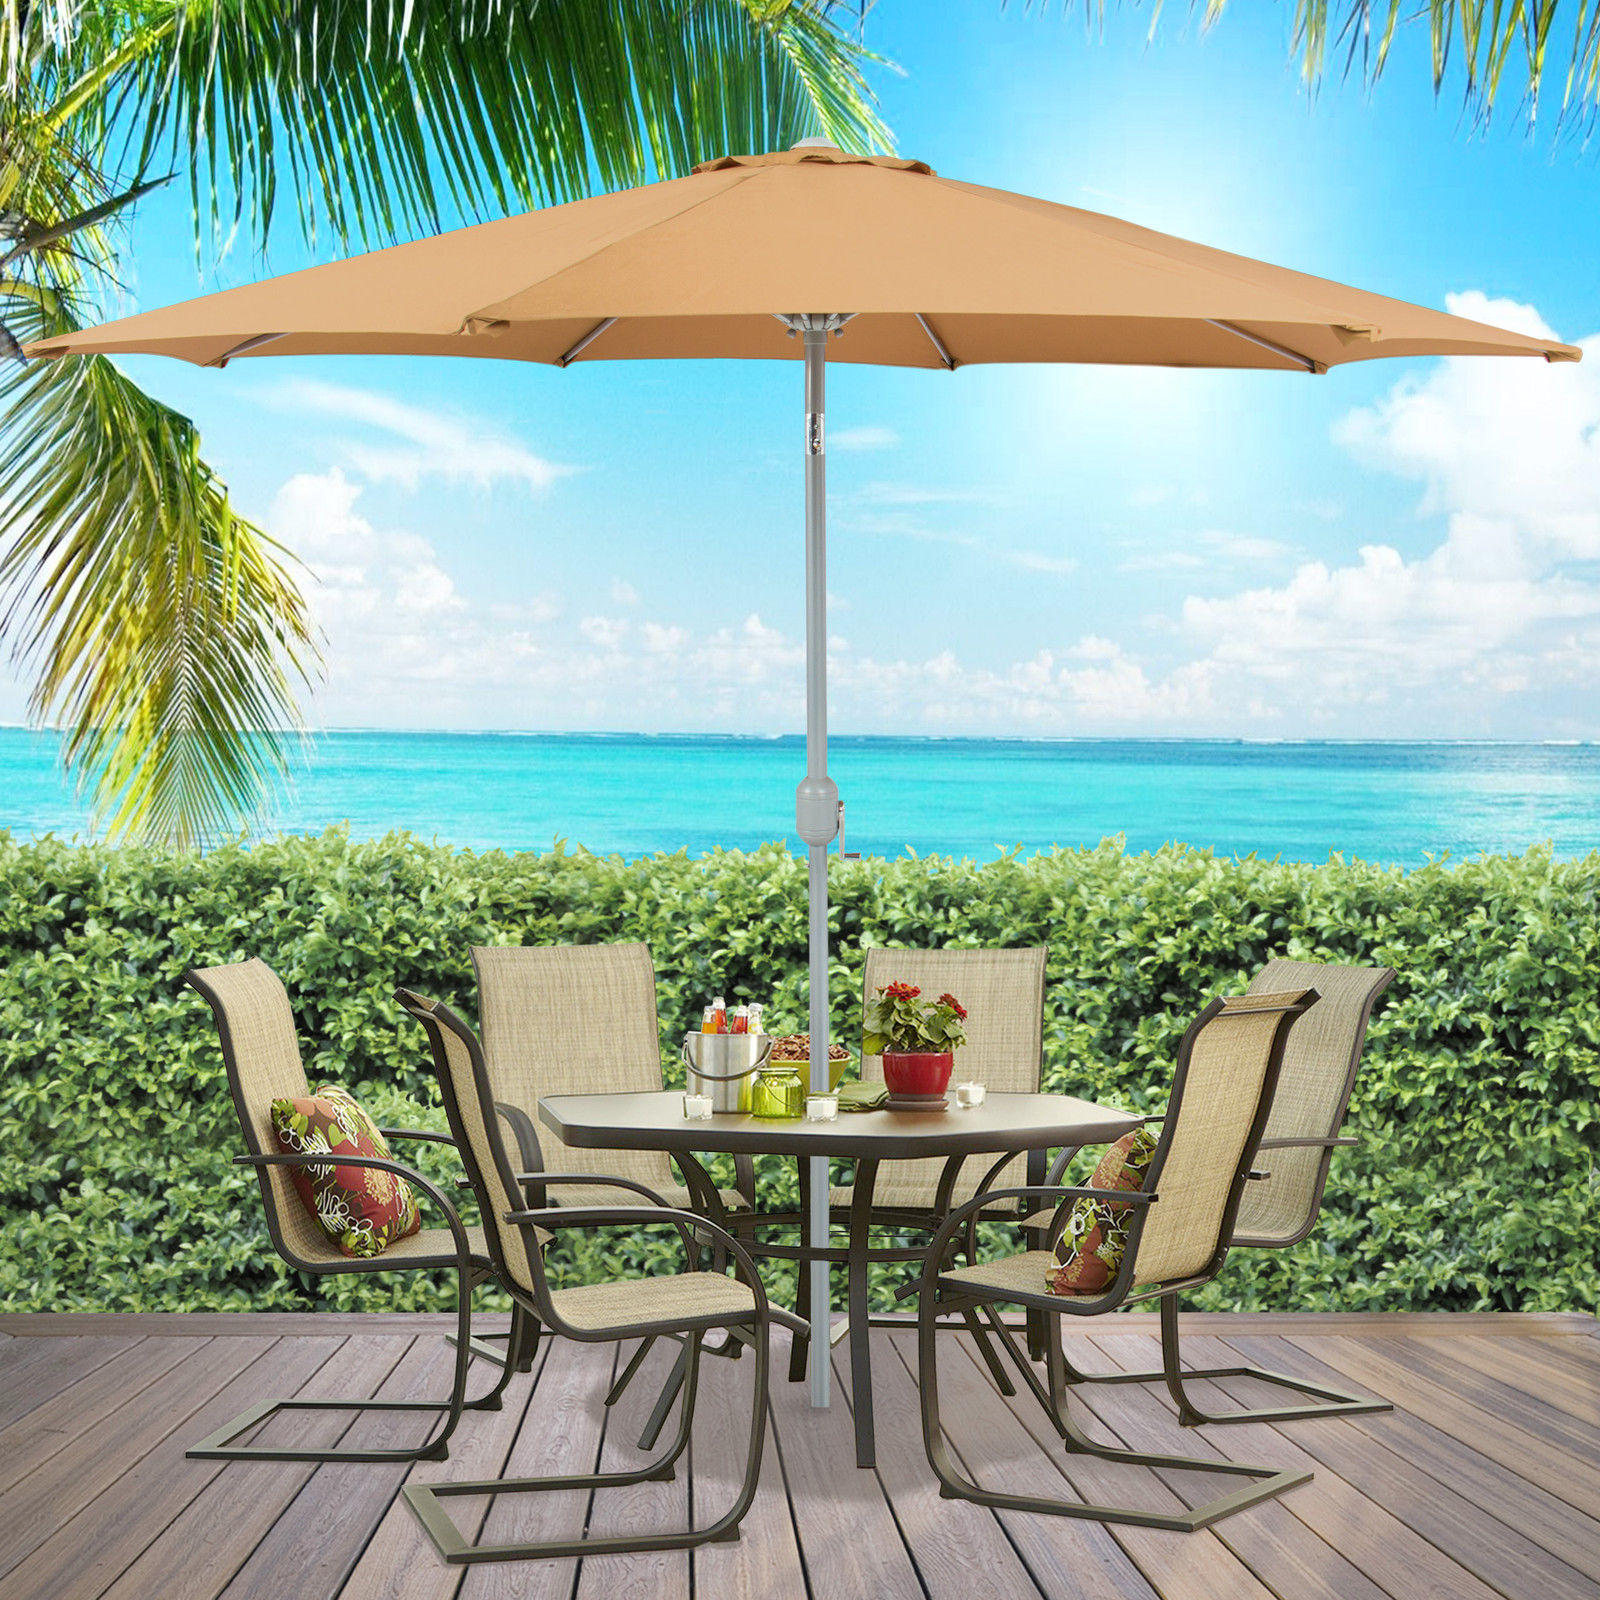 Patio Umbrella 9' Aluminum Patio Market Umbrella Tilt W/ Crank Outdoor